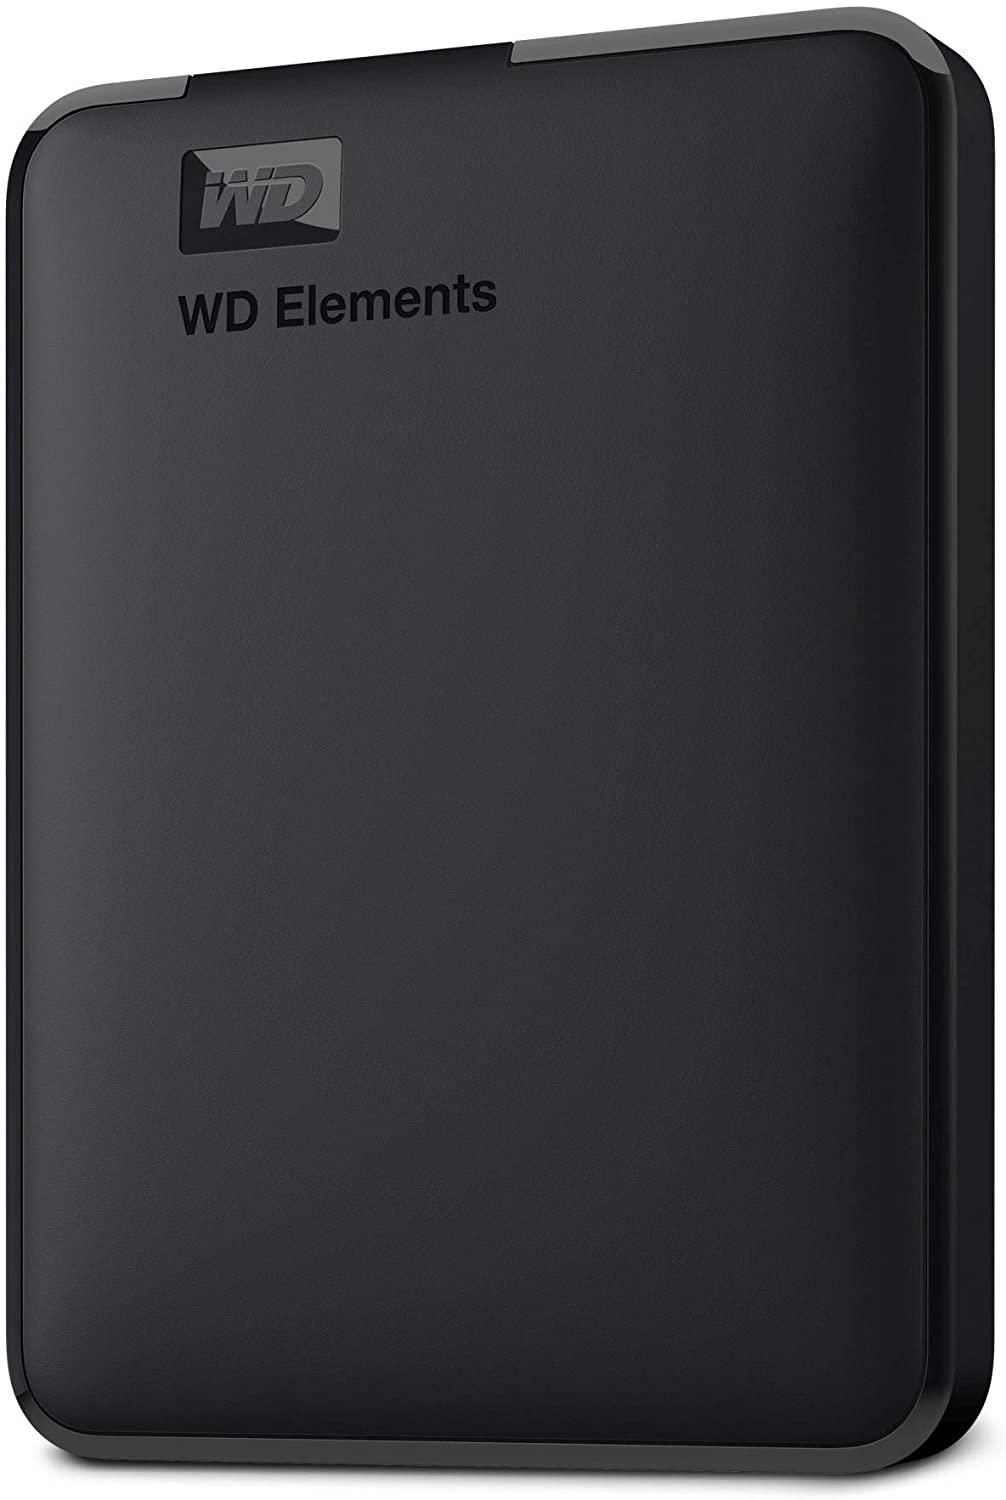 WD Elements - Disco duro externo portátil de 2 TB con USB 3.0, color negro